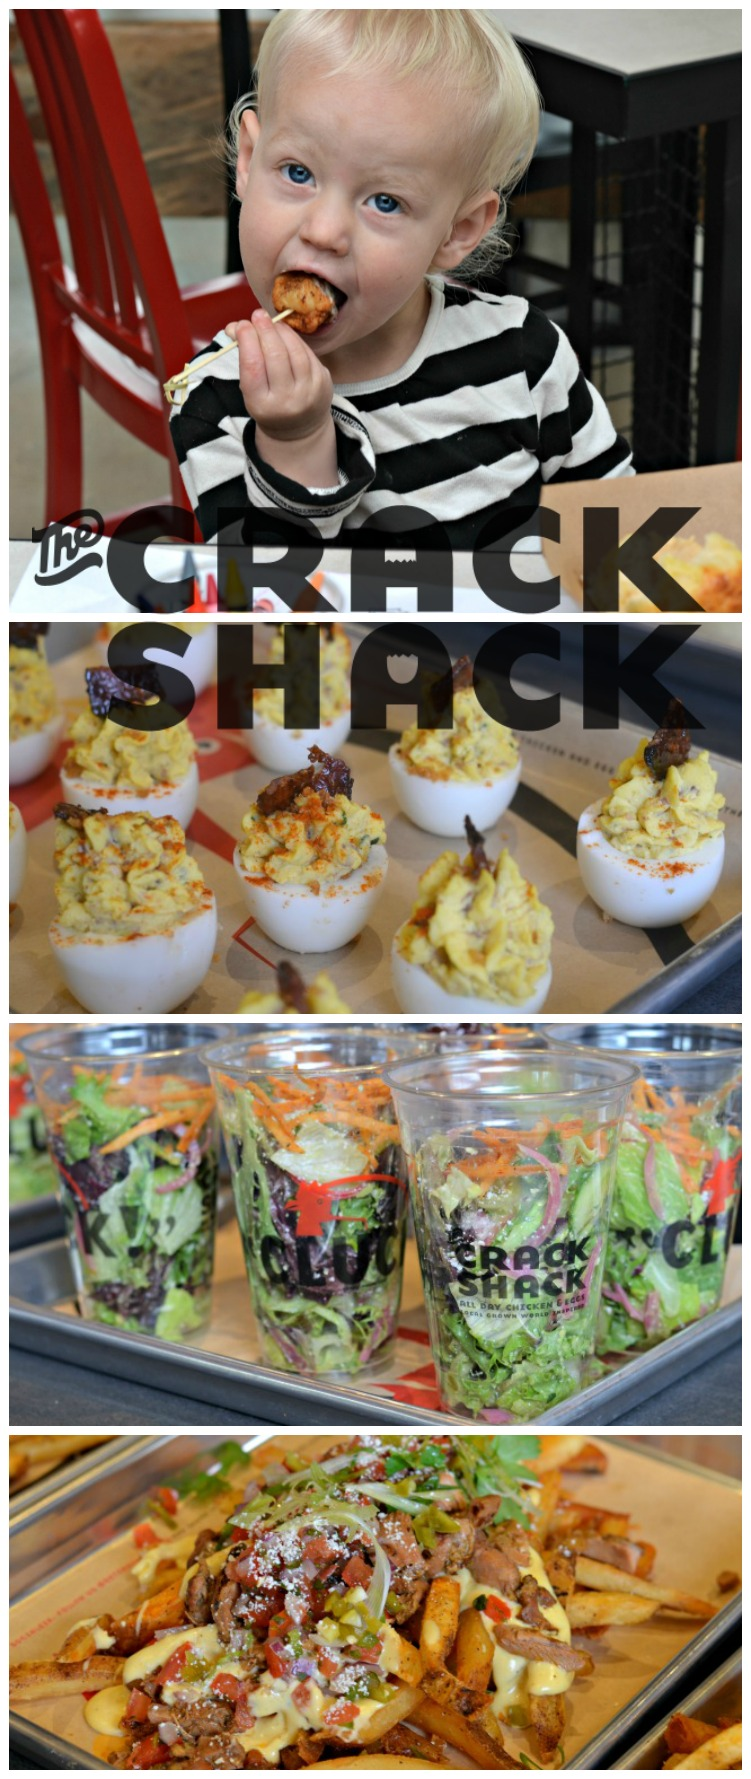 The Crack Shack Encinitas is opening up on 2/13. If you're looking for a kid-friendly eatery, you need to check this location out!